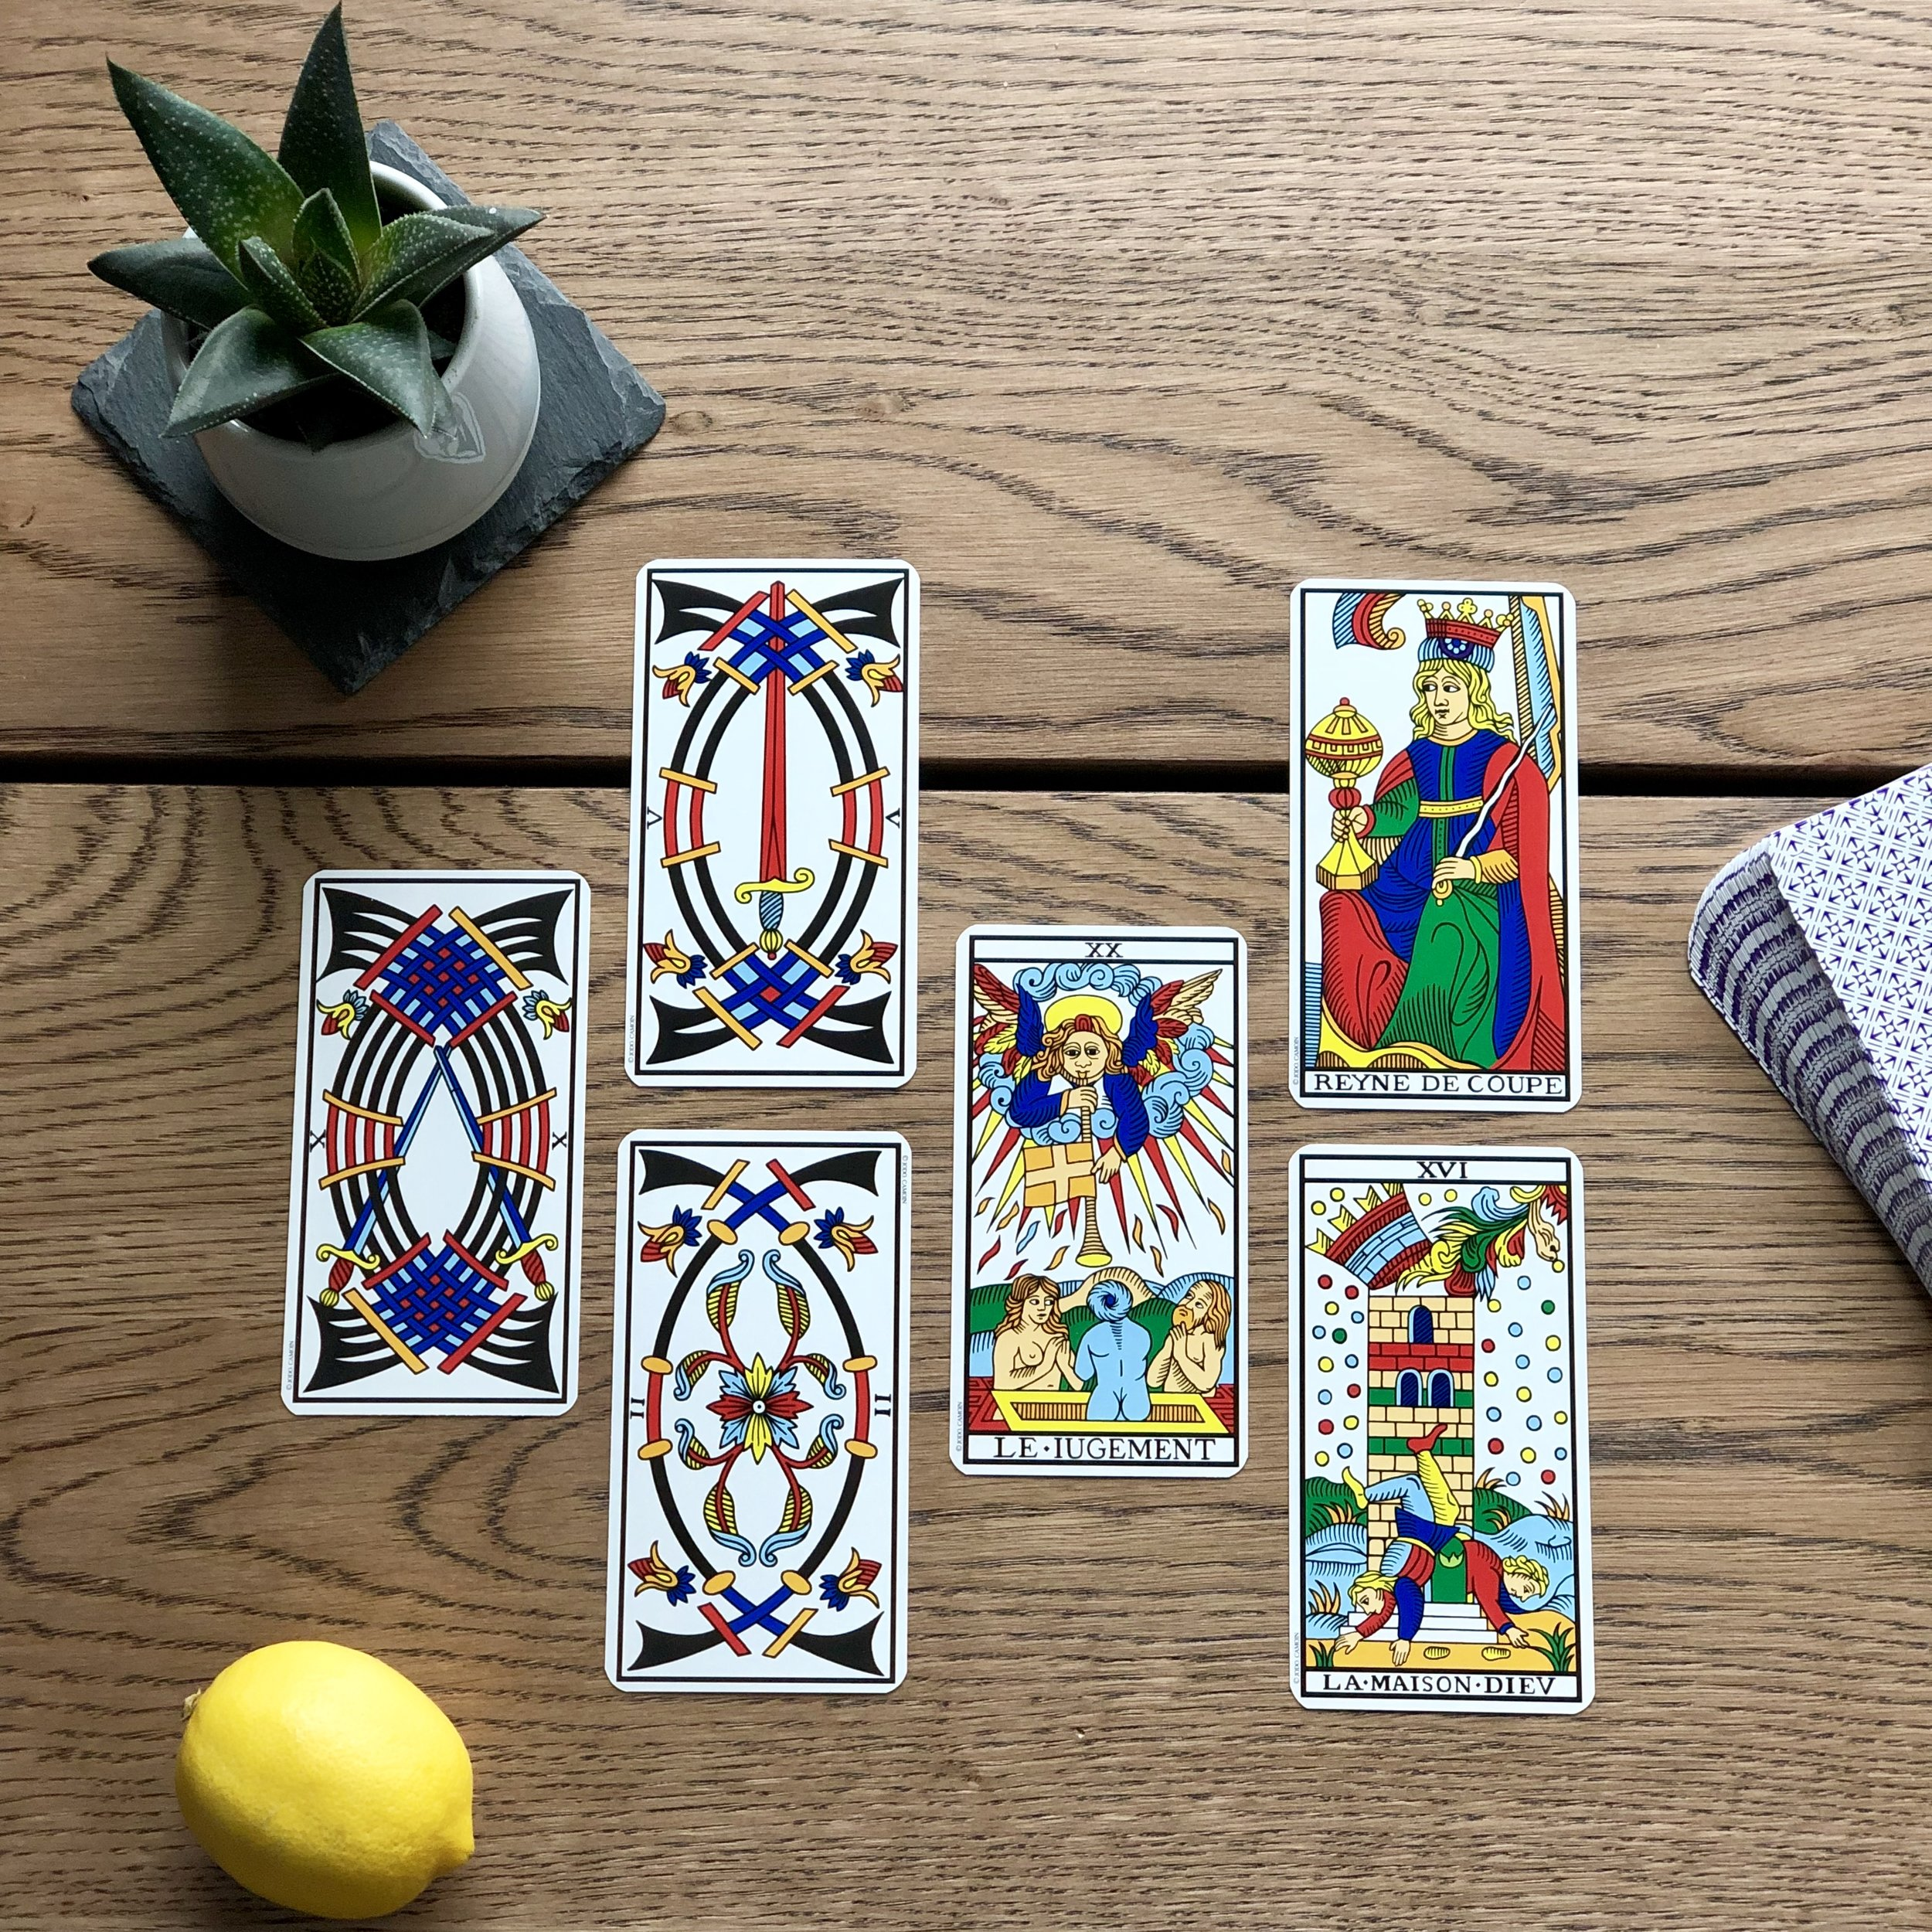 INTERVIEWING THE TAROT DE MARSEILLE - Tell me about yourself. 10 Épées.What are your strengths? 5 Épées.And your limitations? 2 Épées.*What are you here to help me learn? Le Jugement.How can I work with you most effectively? Reyne de Coupe.Where is our partnership headed? La Maison Dieu.